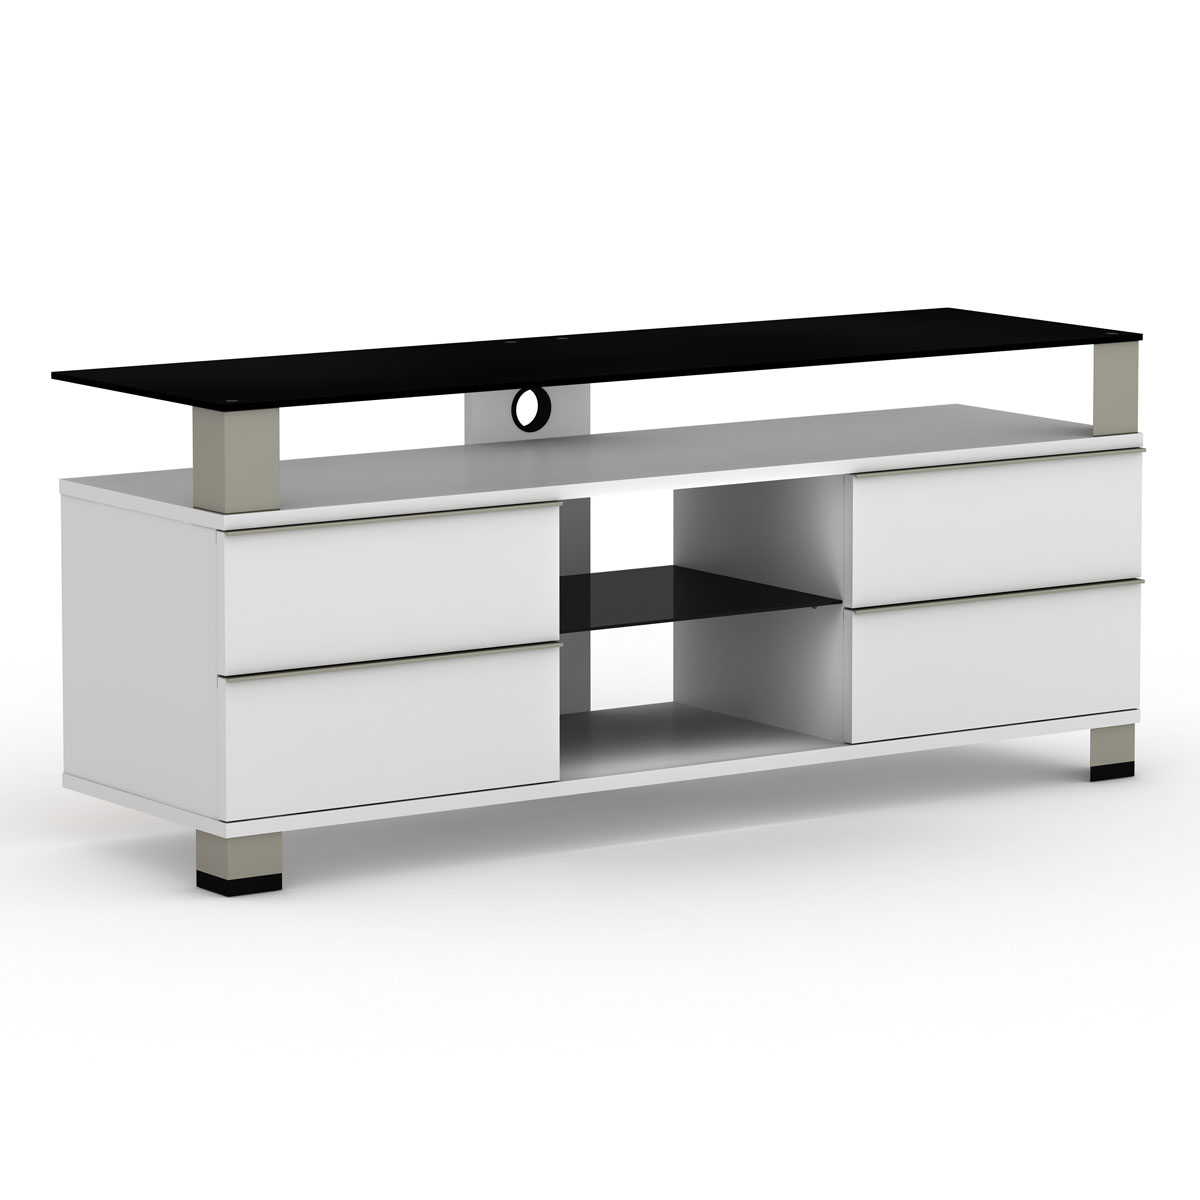 elmob pone pn 140 03 blanc meuble tv elmob sur. Black Bedroom Furniture Sets. Home Design Ideas